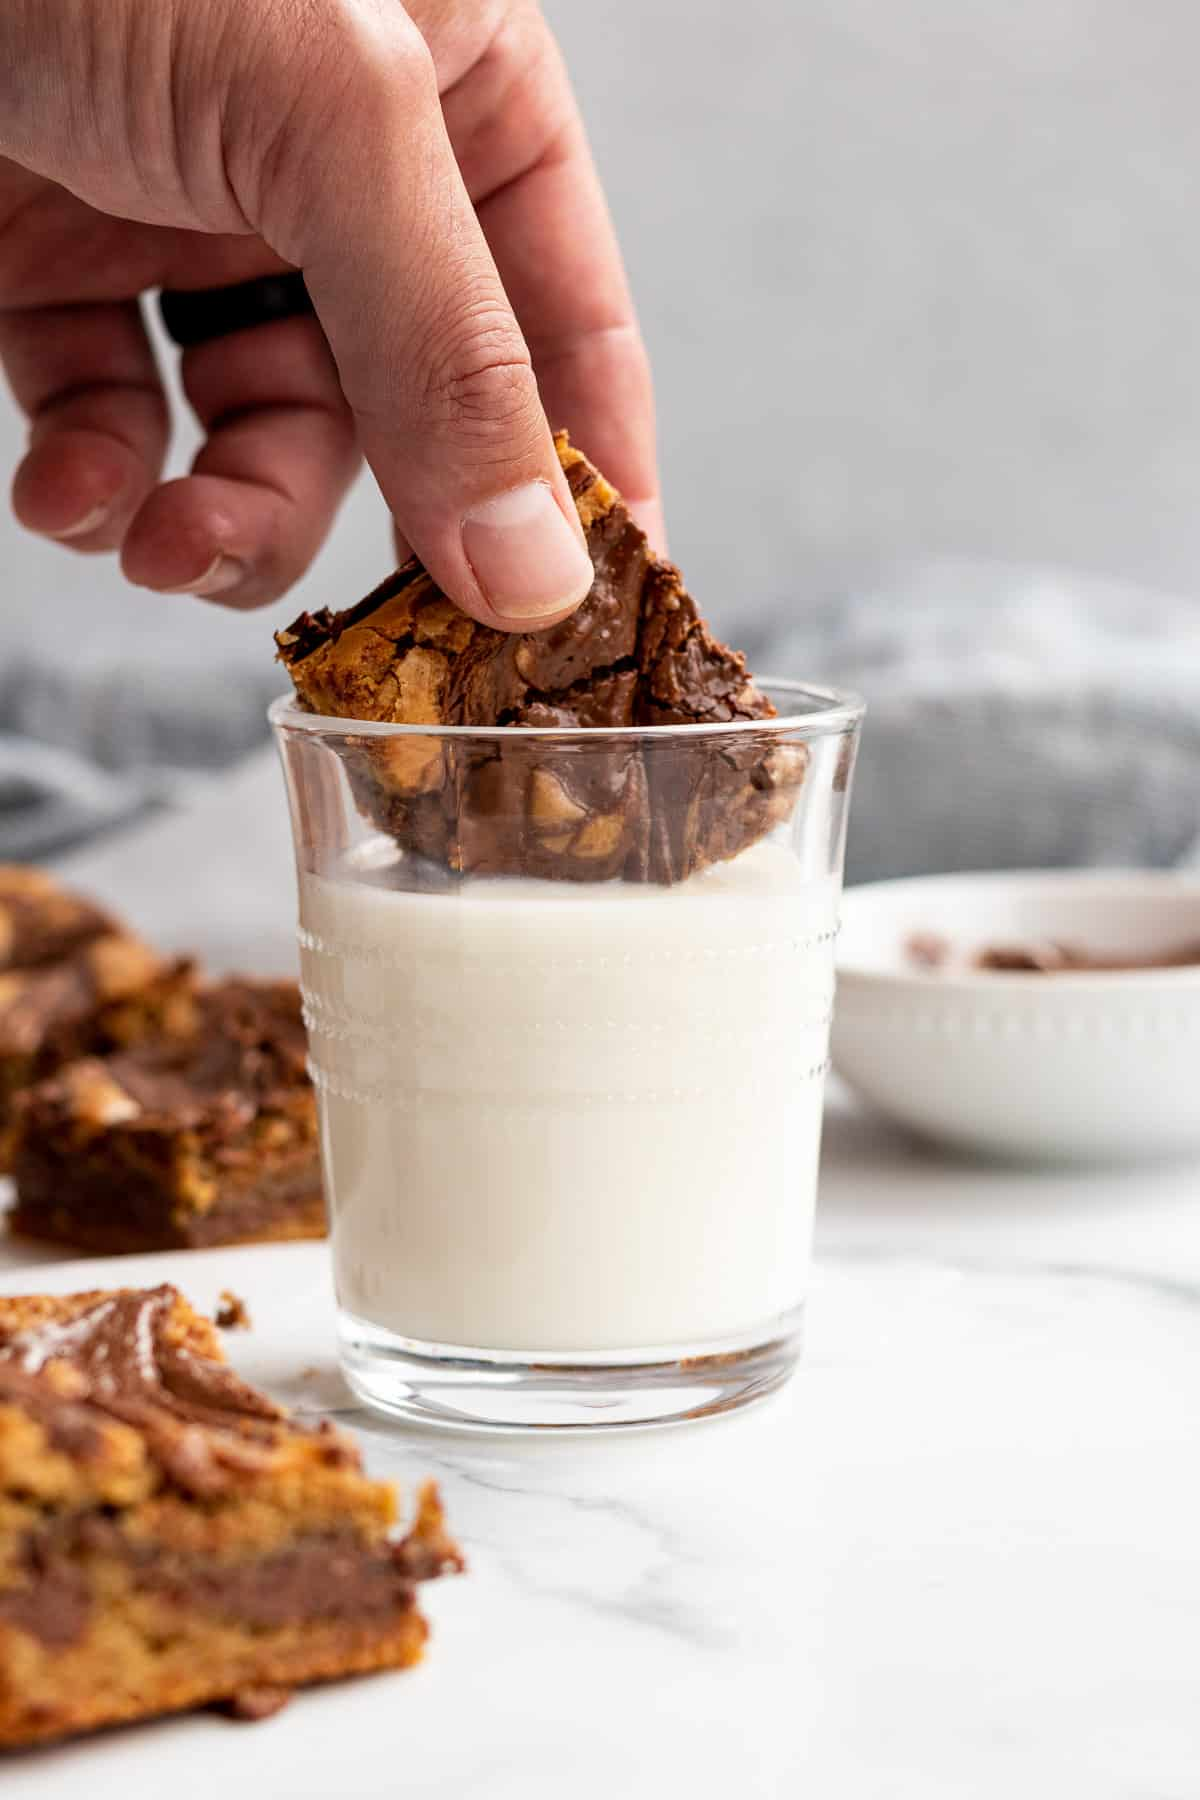 nutella blondie being dipped into a glass of milk